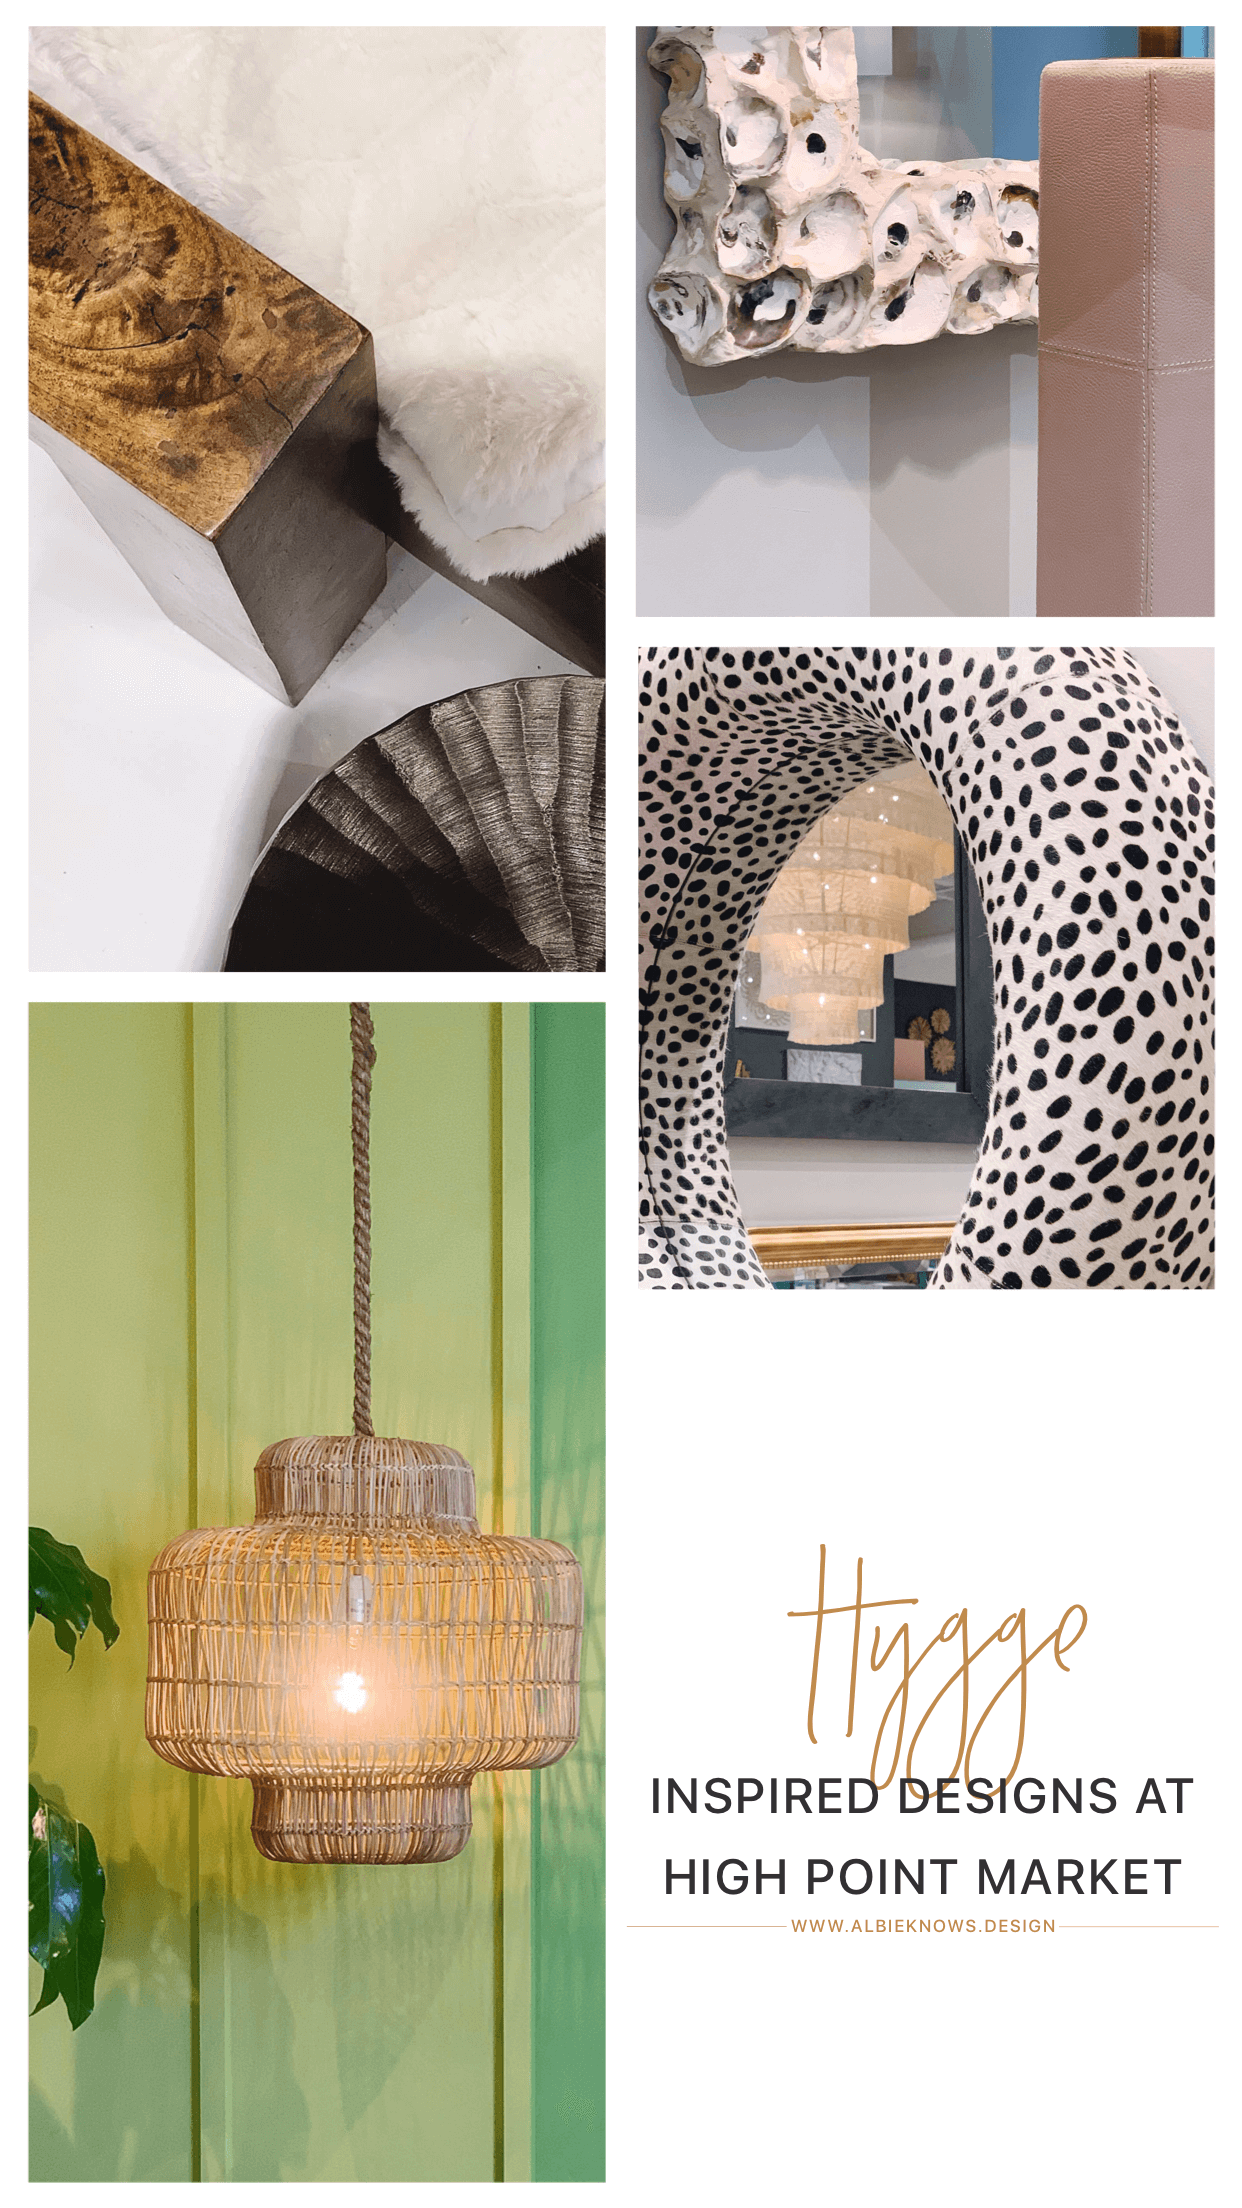 High Point Market Hygge Inspired Design with Albie Knows 1.png